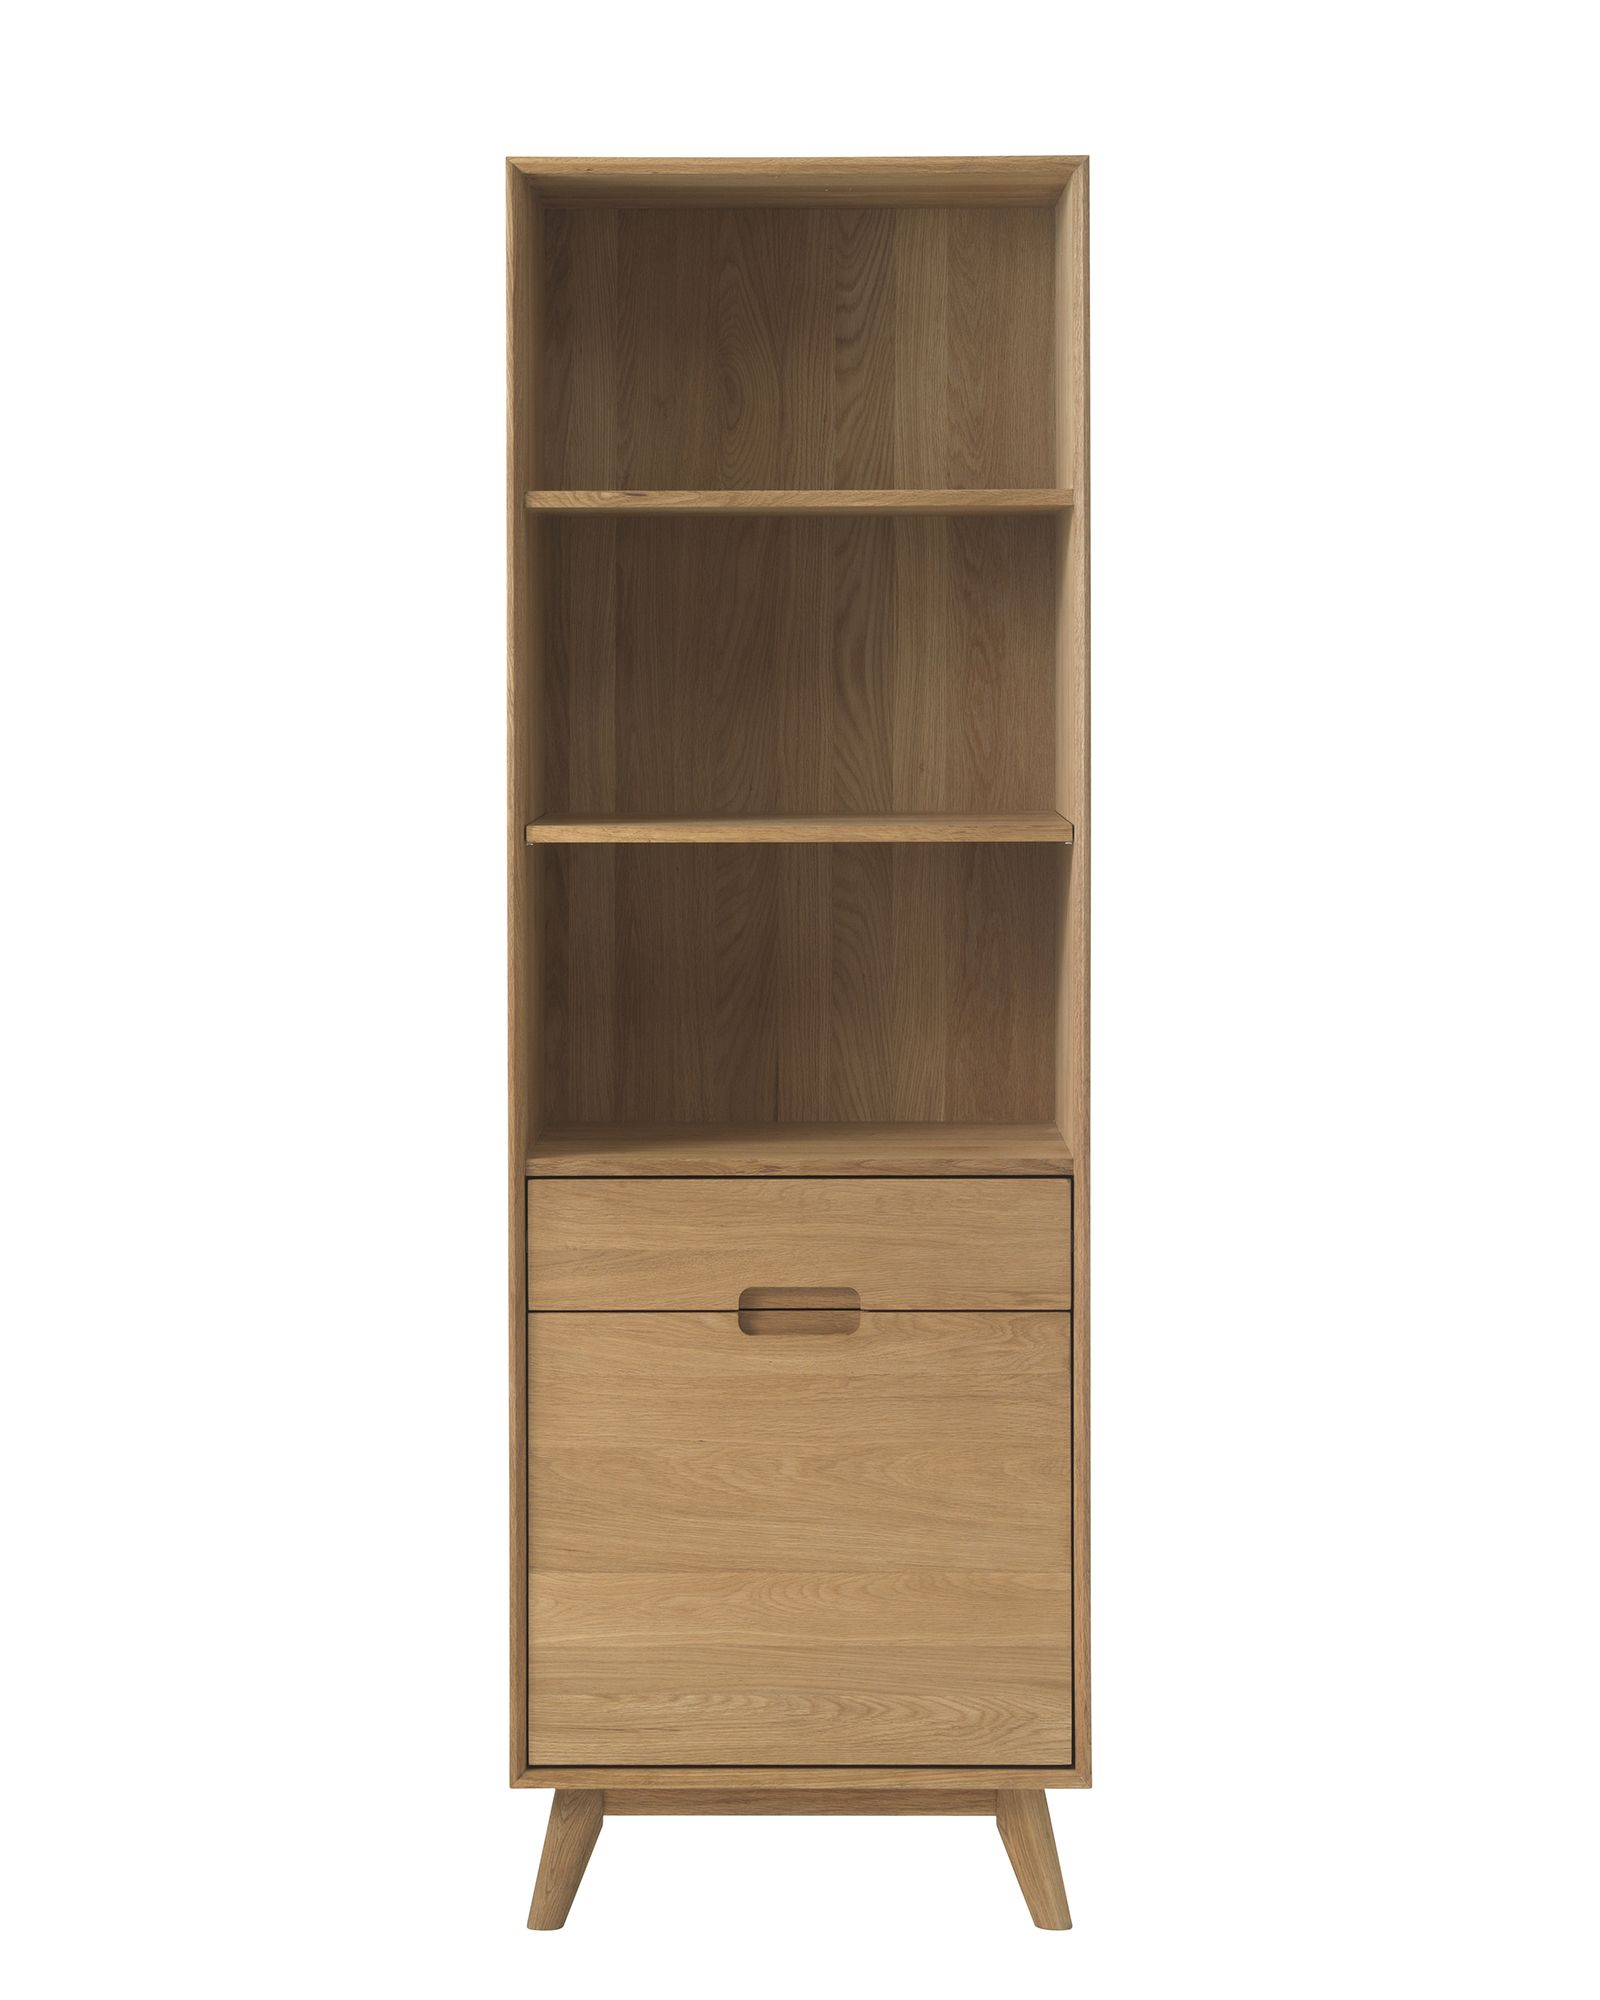 Bjorn Oak Open Shelving Display Cabinet  Display Cabinets  Meubles -> Meuble Tv Bjorn